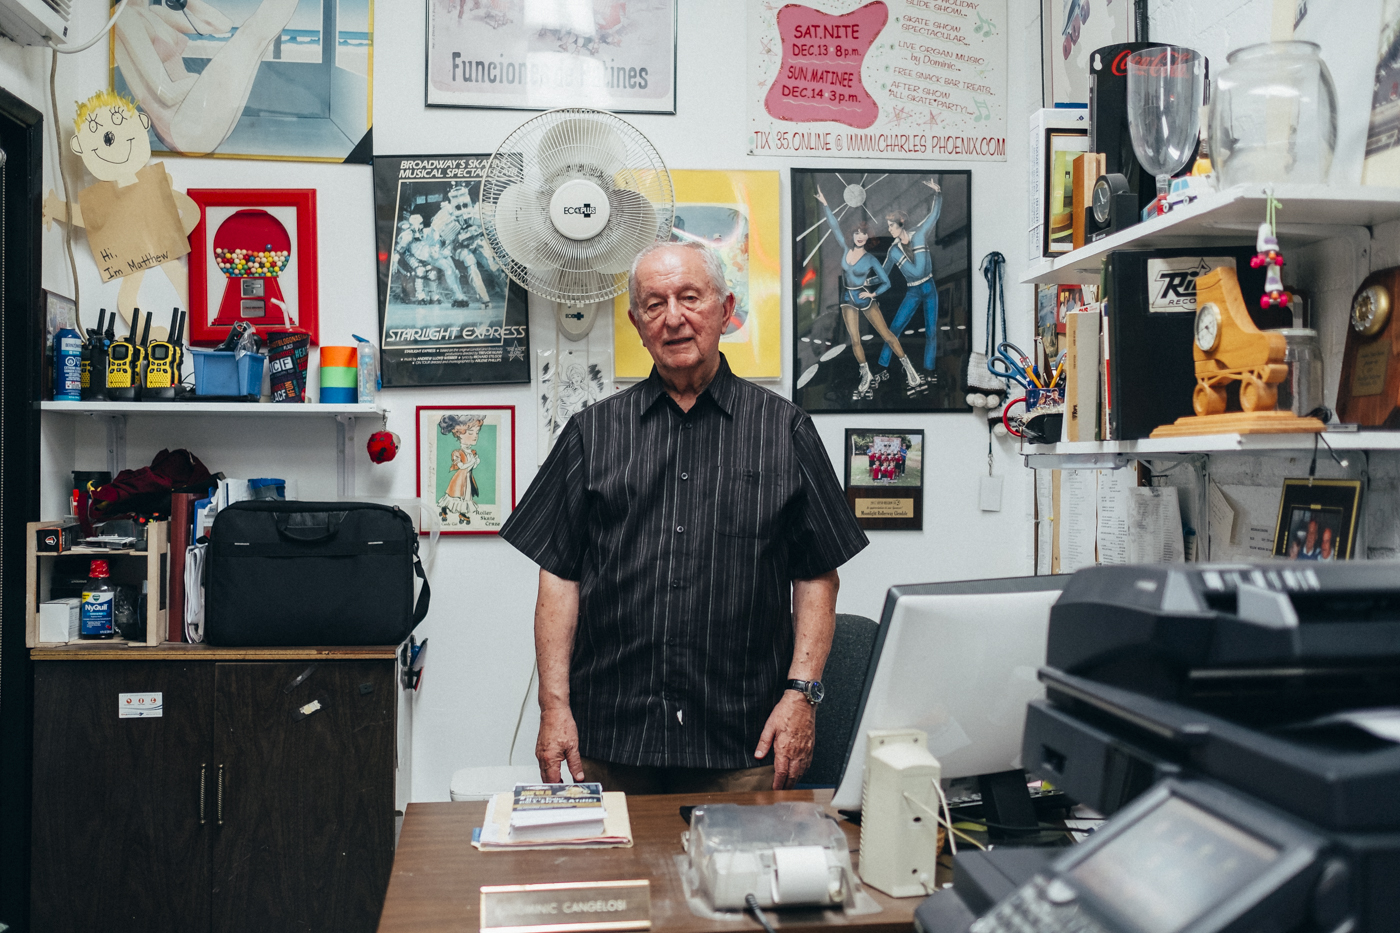 Dominic Cangelosi, 84 years old, is the owner of the Moonlight Rollerway. His story here started very early. When he was young he used to come here to skate with his friends. He loved hearing the sound of the organ and decided to learn to play. That's how he started working at Harry's Rollerink. In the 1980s, he bought the establishment that became the Moonlight Rollerway. Since every Tuesday evening, he has been on stage and enthusiastically starts playing on his Hammond B3 organ to the delight of the crowd.